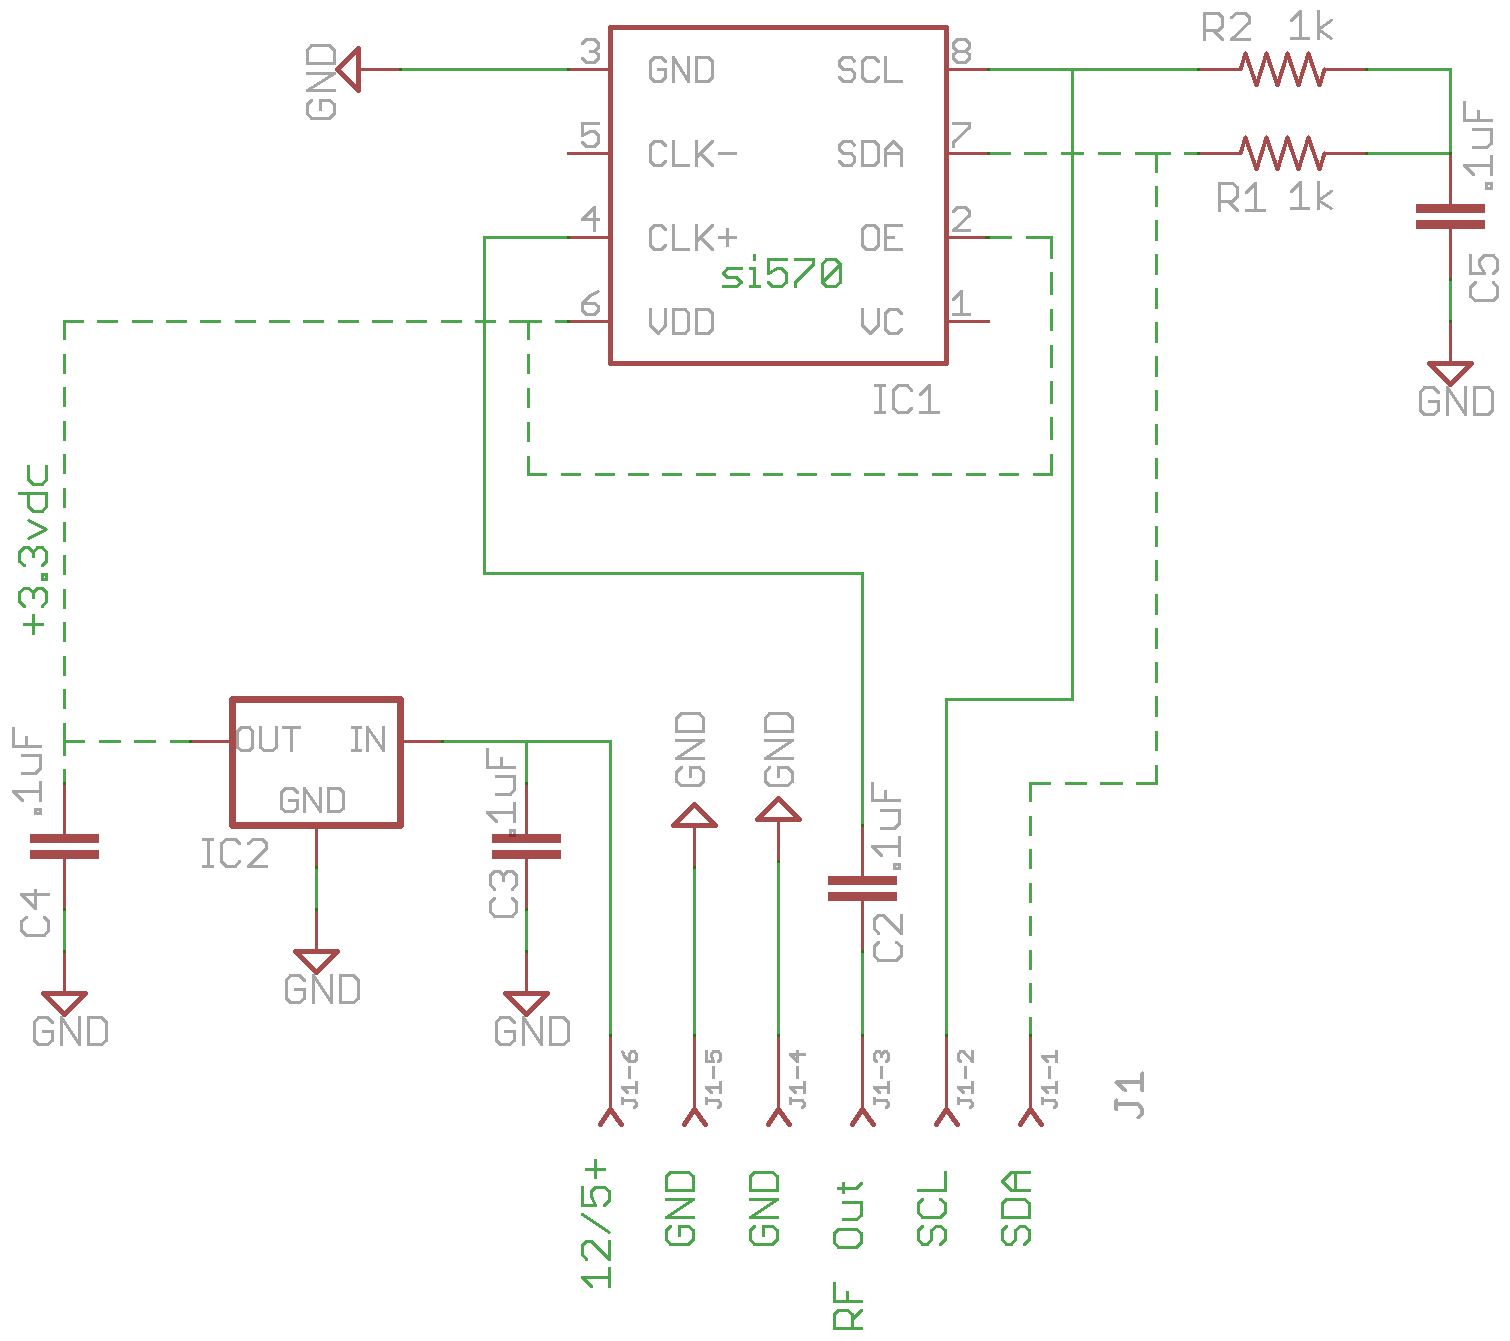 si570 controller card example in Eagle